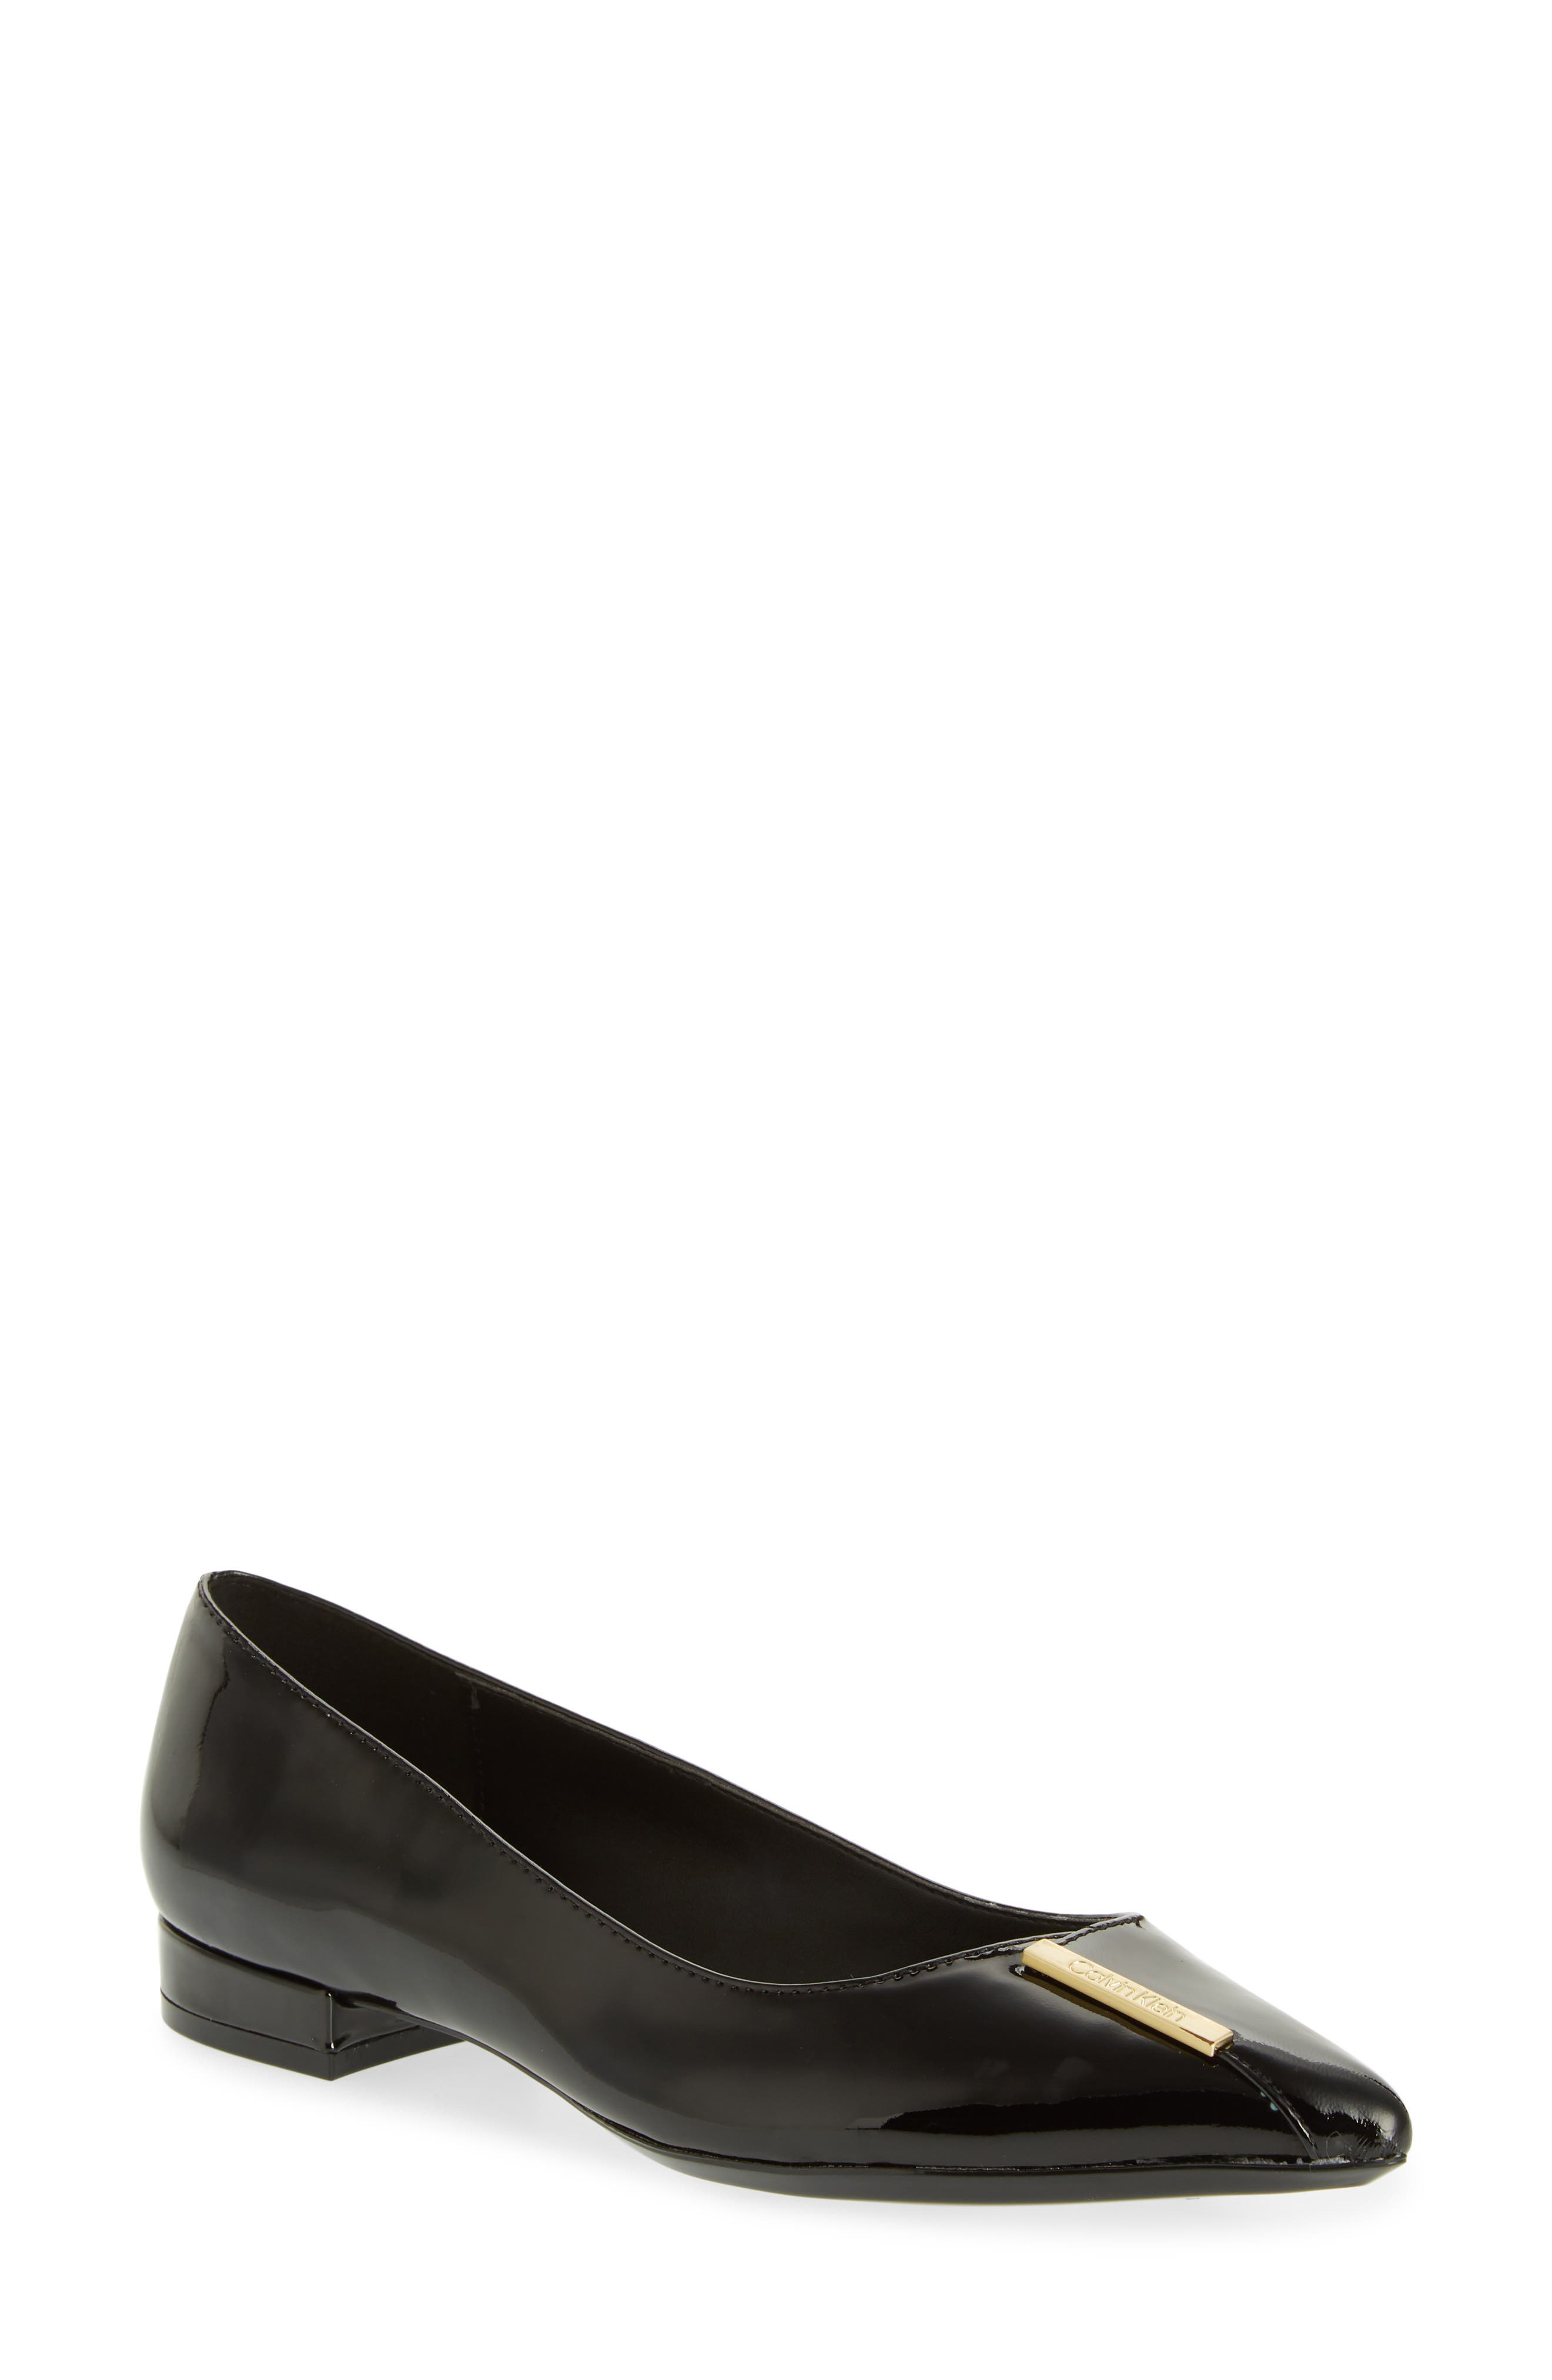 Arline Pointy Toe Flat,                         Main,                         color, BLACK PATENT LEATHER